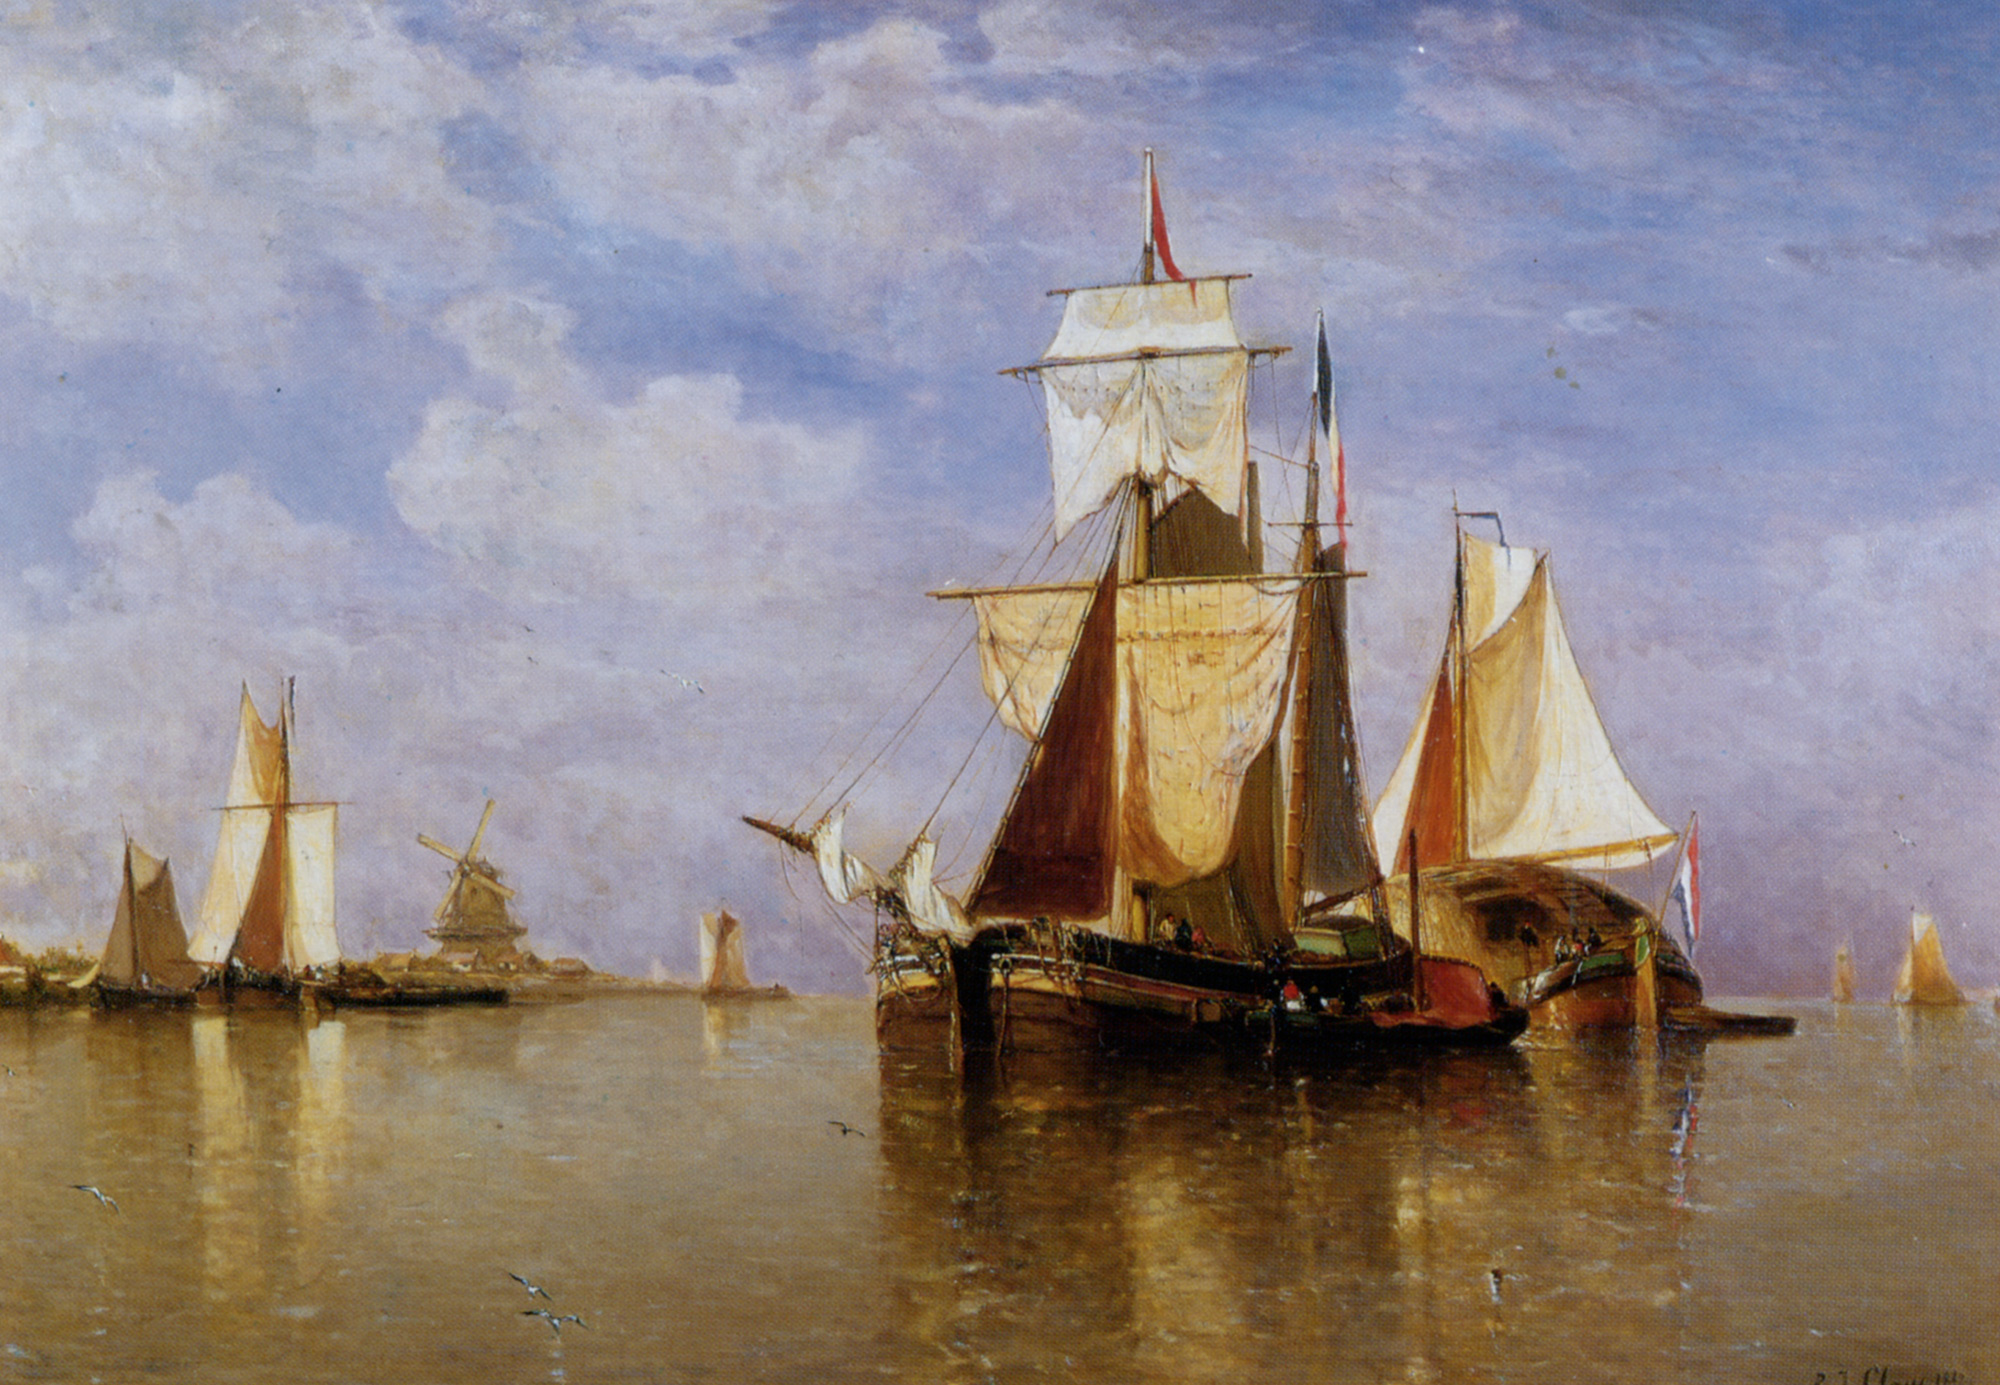 Shipping off the Dutch Coast :: Paul-Jean Clays - Sea landscapes with ships ôîòî